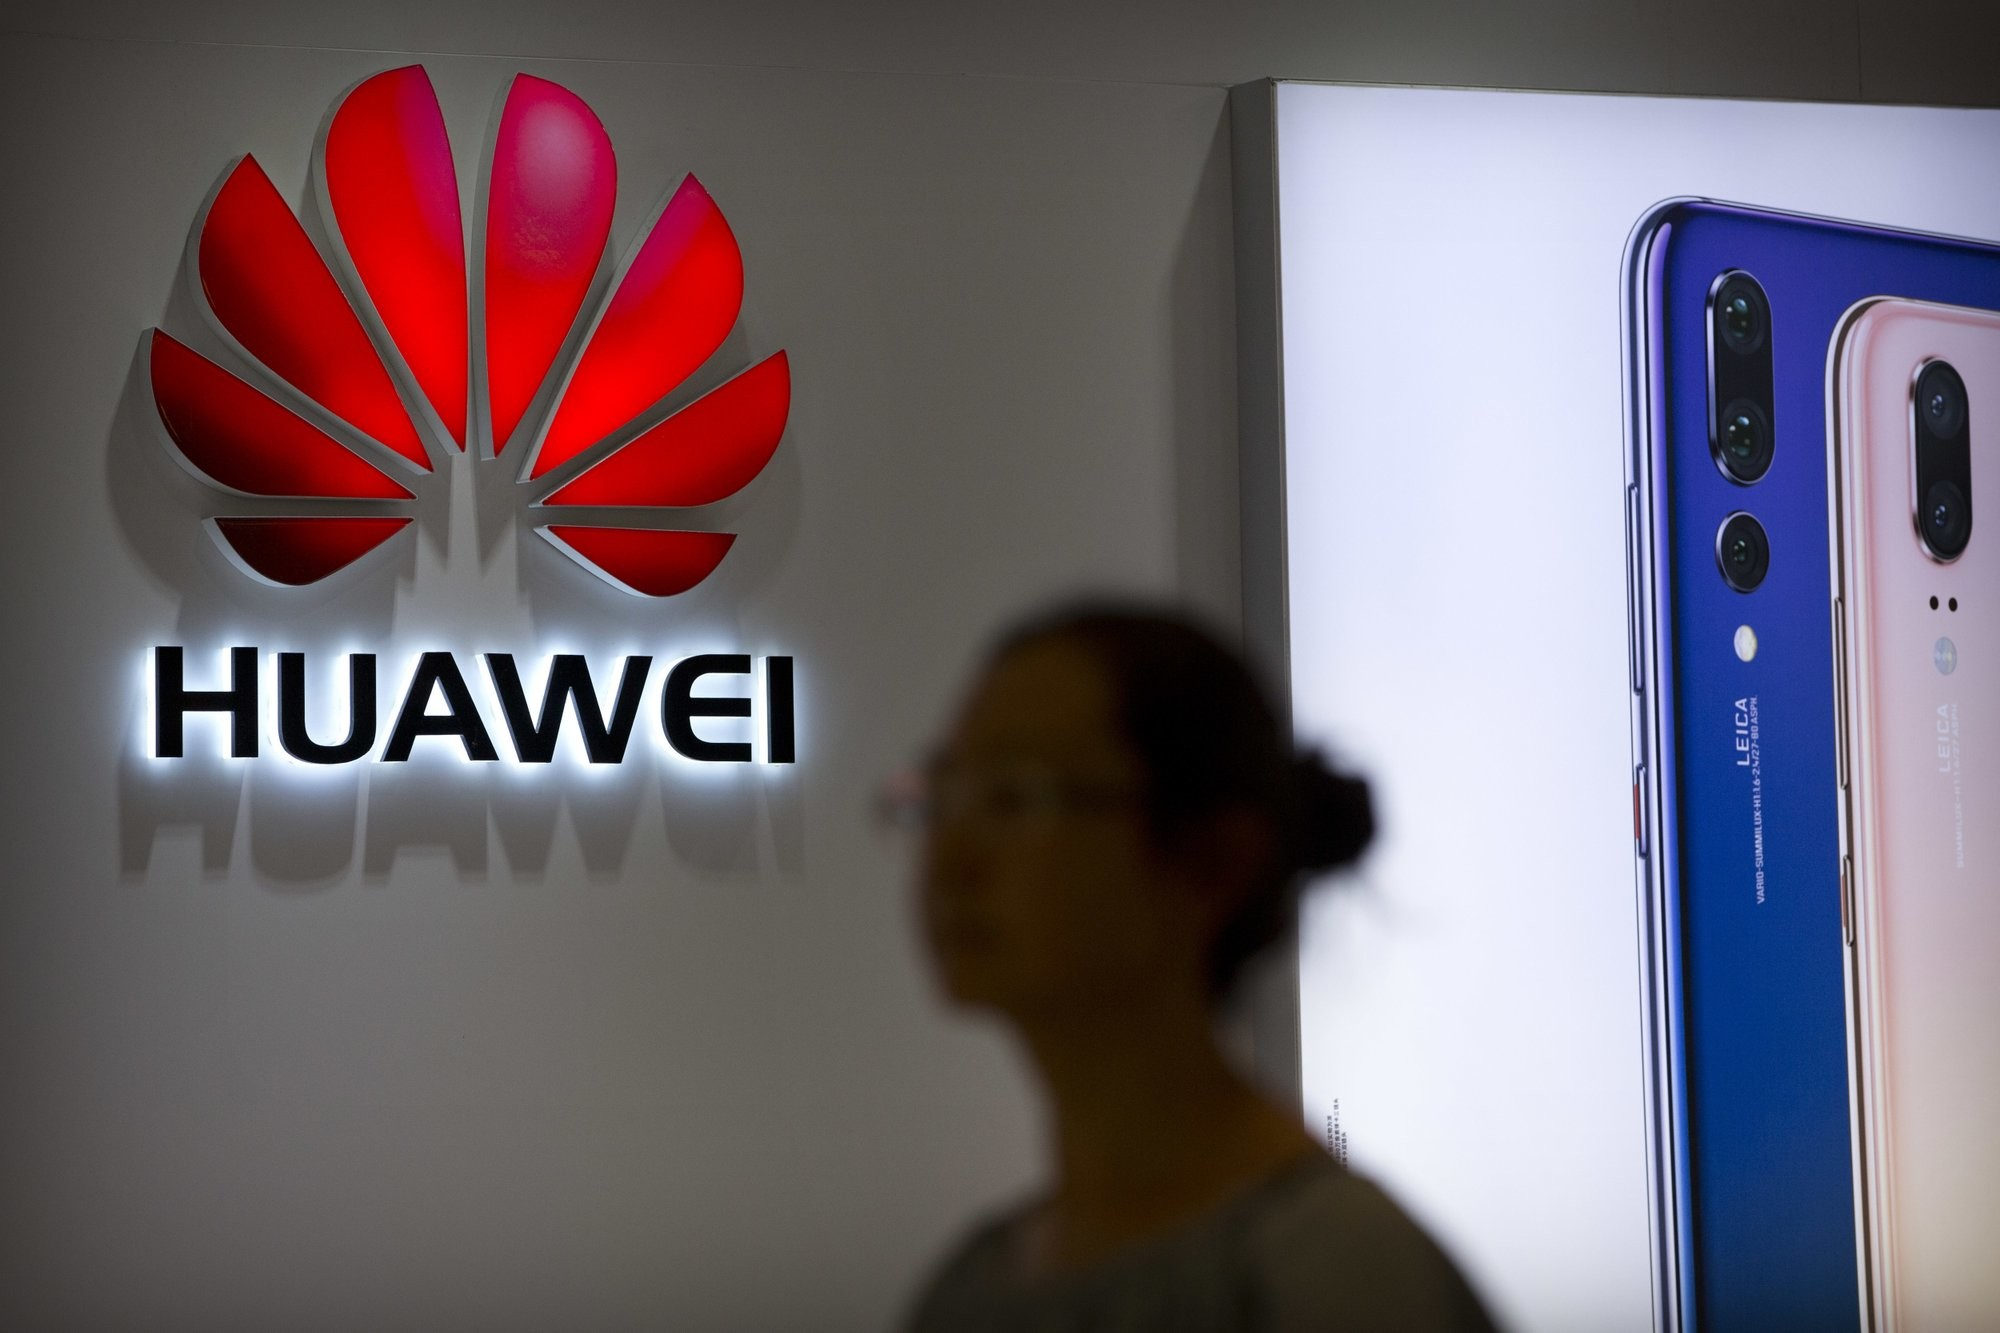 , Huawei, Chief Financial Officer, , Canada, Arrest, Beijing, , , Mobile Phones, Huawei, Red, Pink, Design, Technology, Electronic device, Gadget, Magenta, Plant, Graphic design, Logo